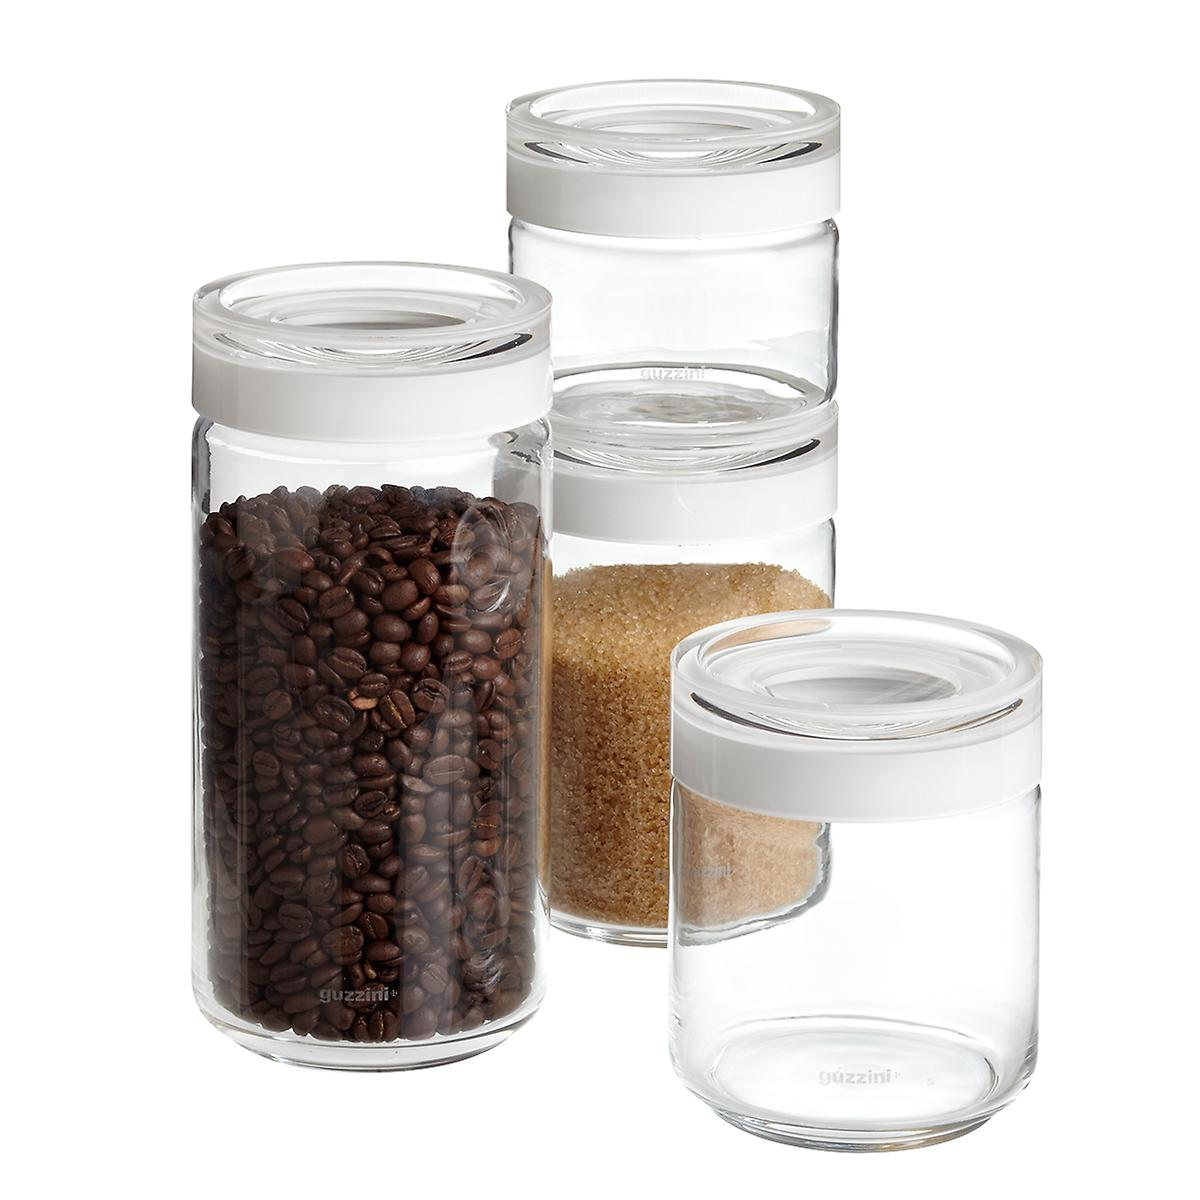 Blanca Glass Canisters by Guzzini